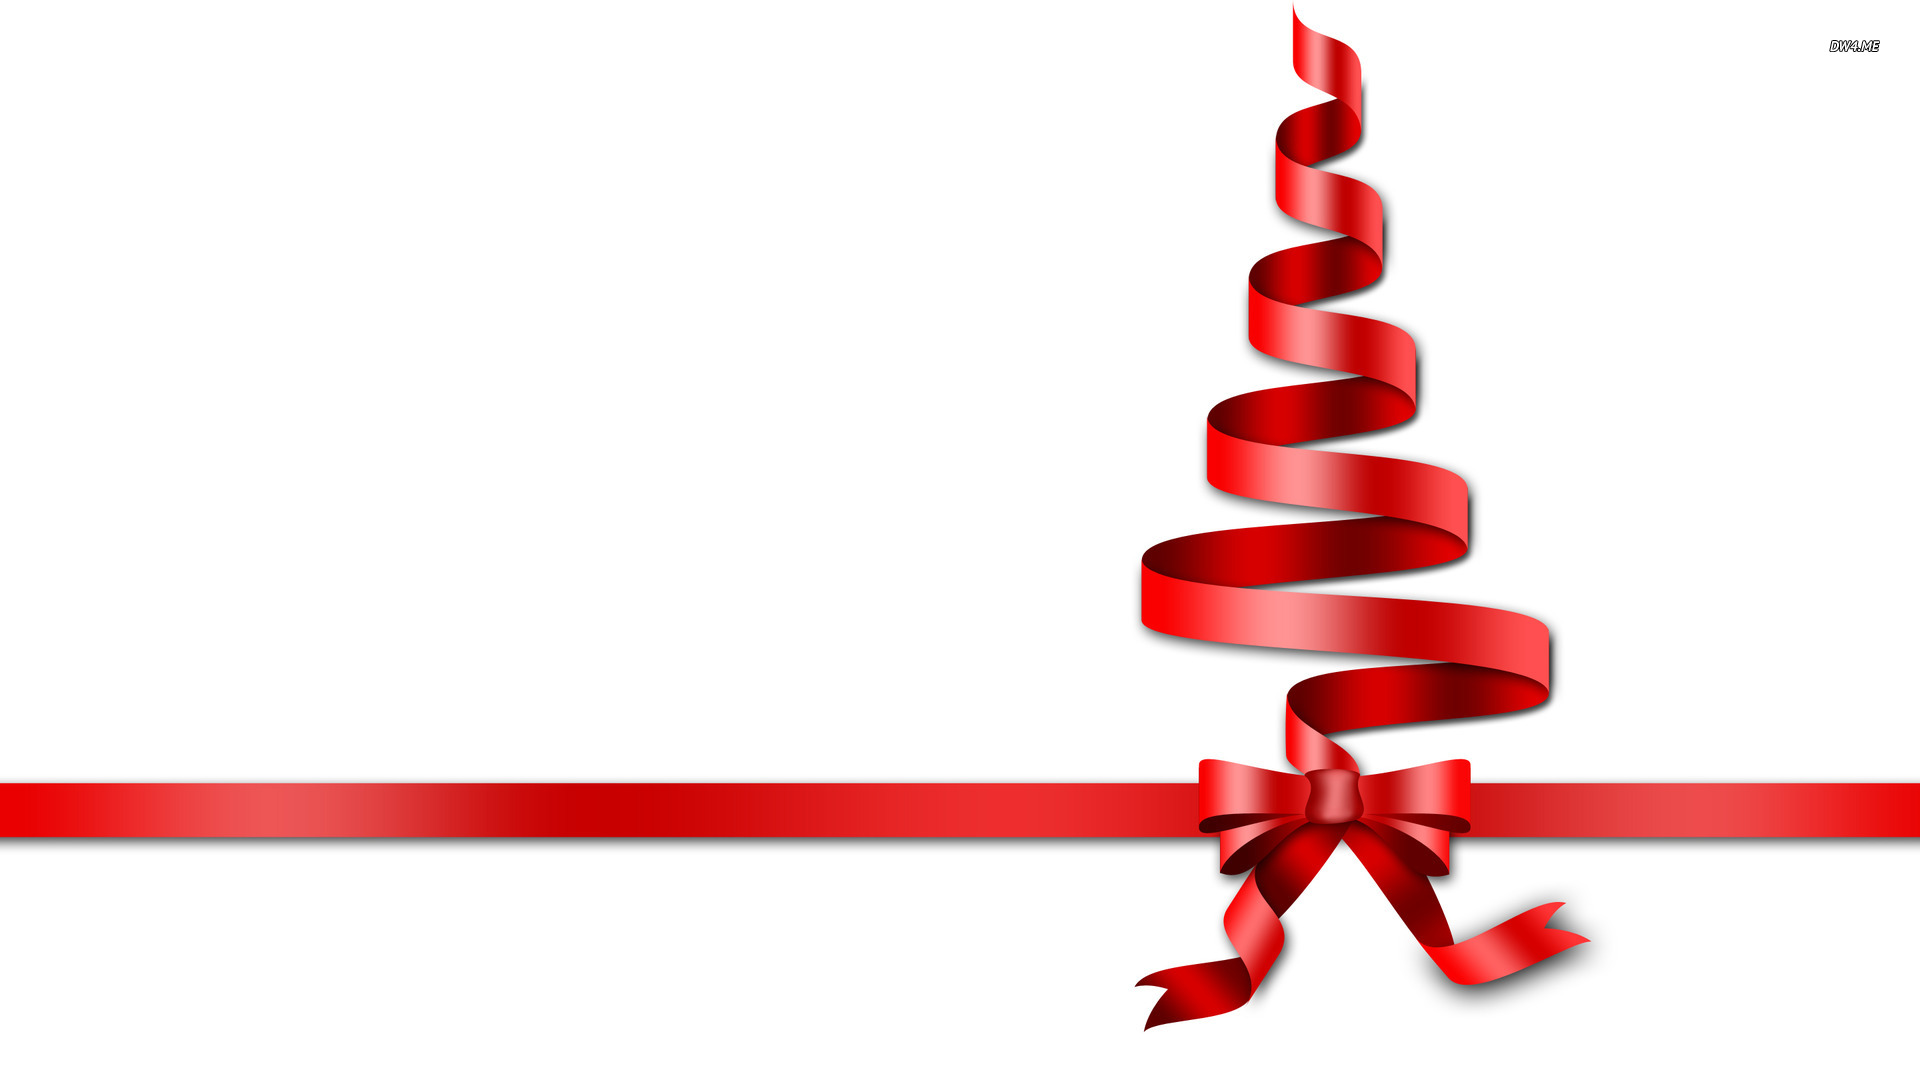 Ribbon christmas border clipart suggest